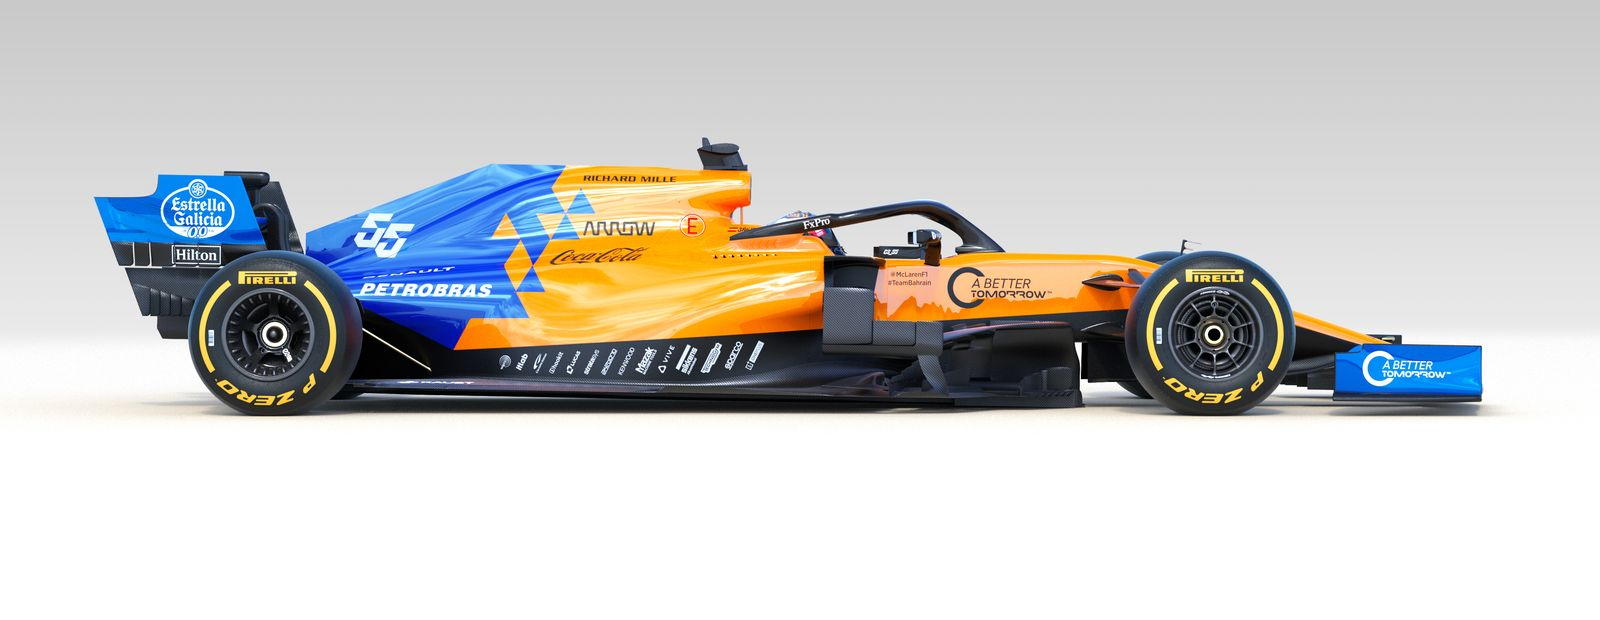 McLaren unveils MCL34 alongside new 2019 driver line-up